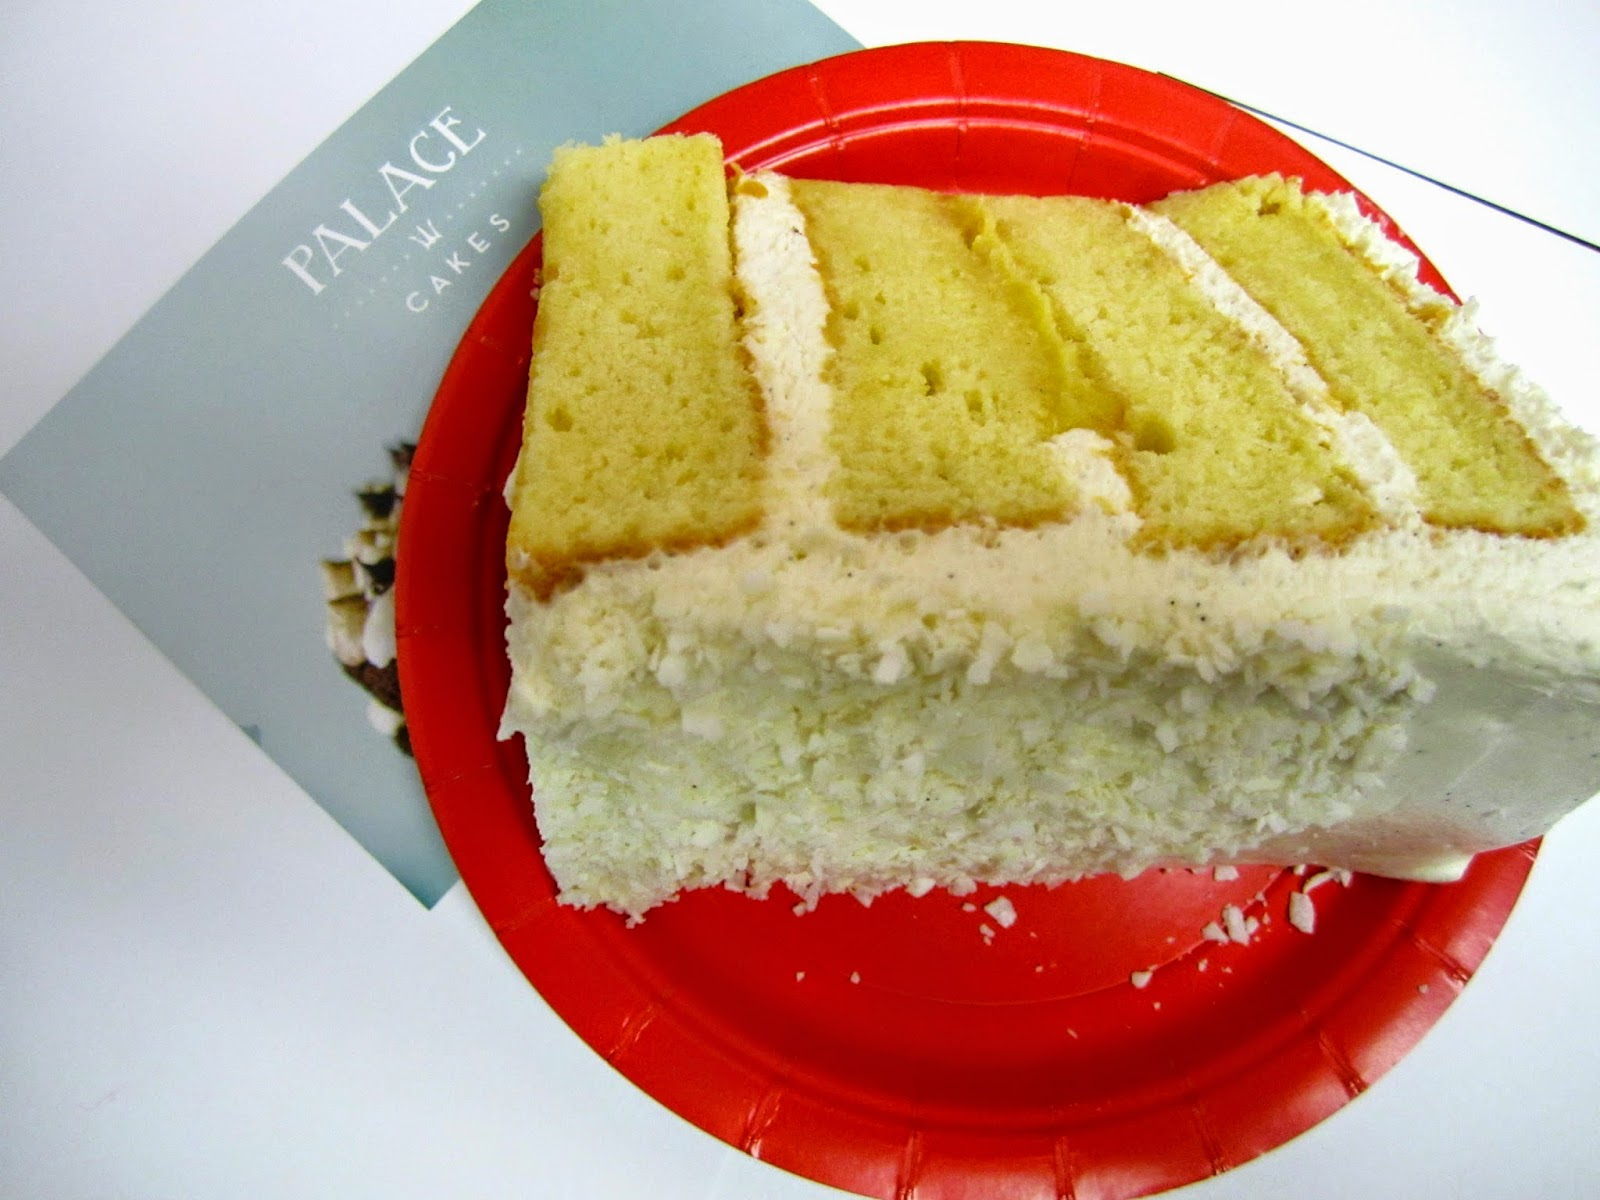 Coconut cake from Palace Cakes Portland, Oregon